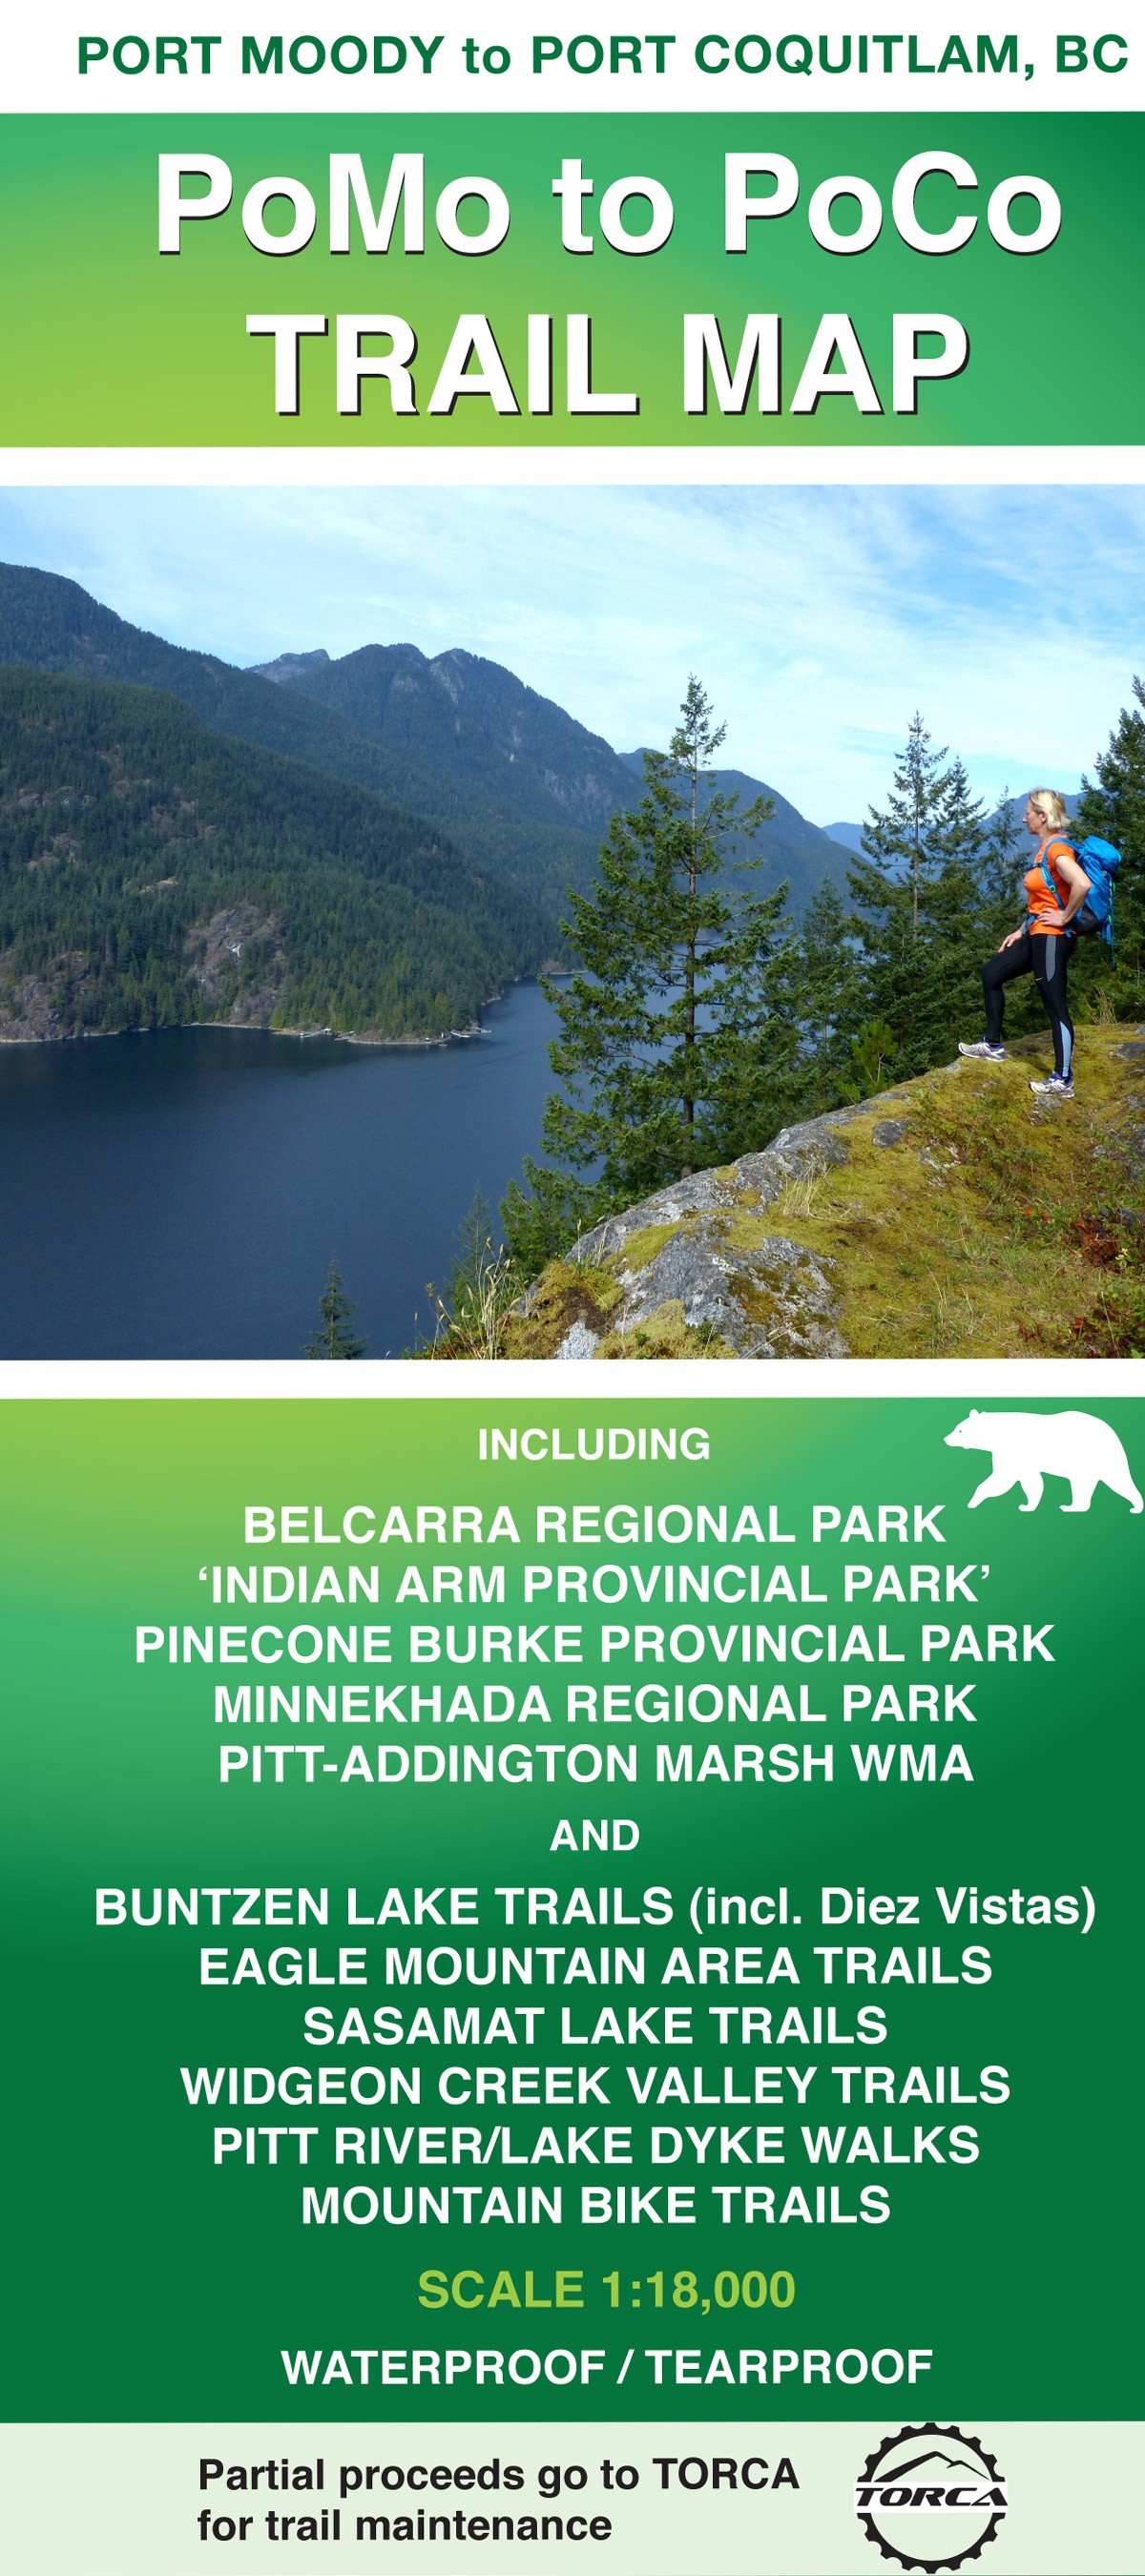 PoMo to PoCo TRAIL MAP